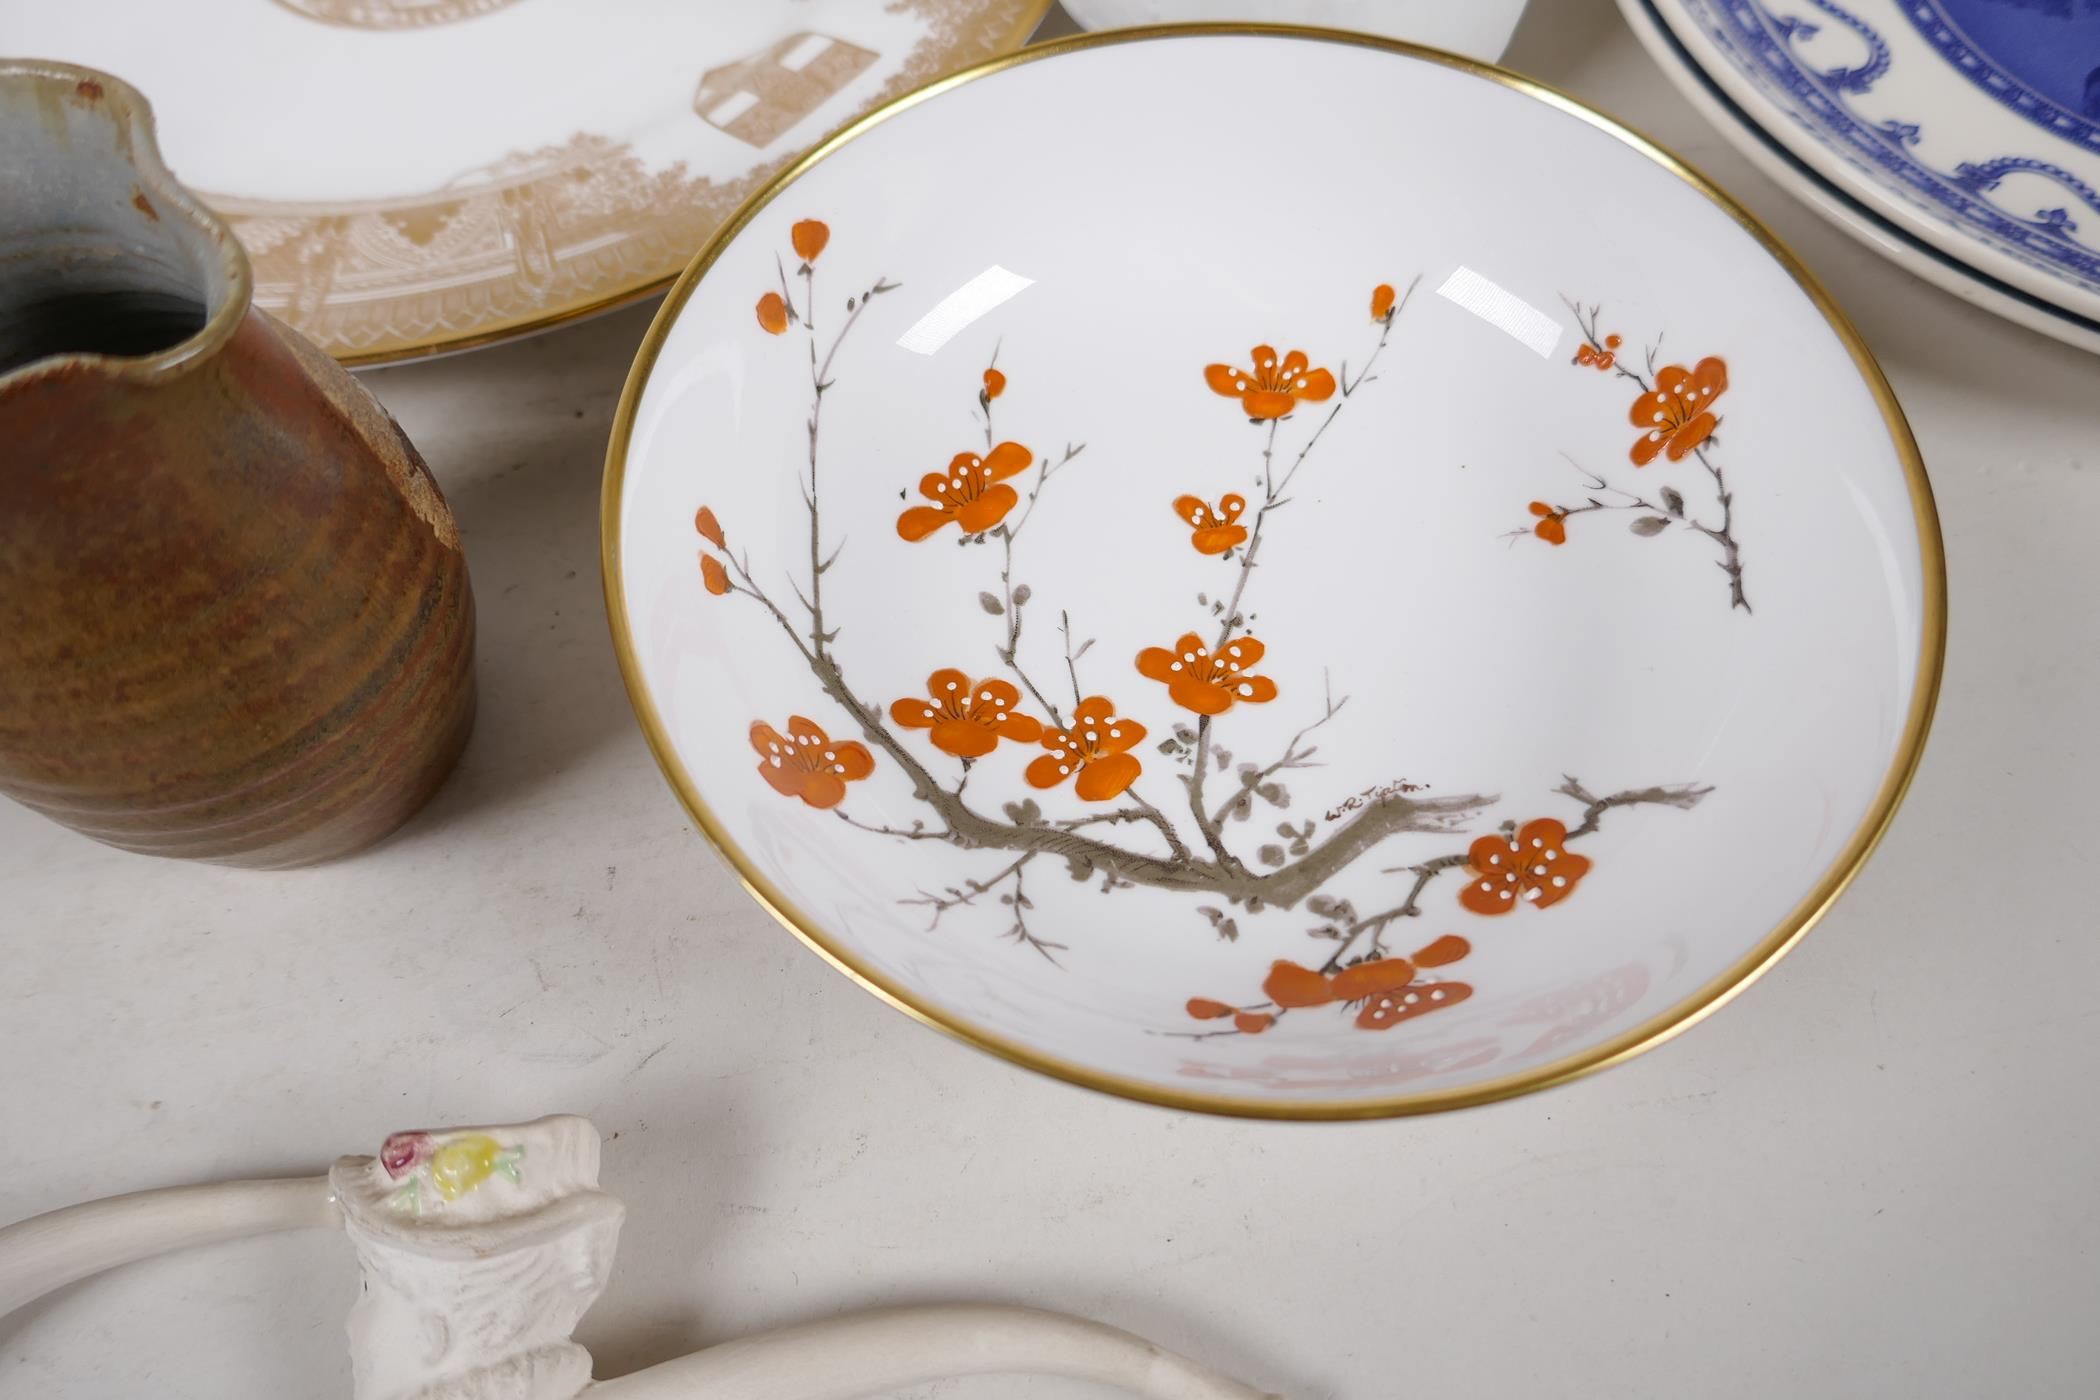 A quantity of decorative pottery and porcelain to include Royal Doulton, Wedgwood, Spode etc - Image 3 of 6